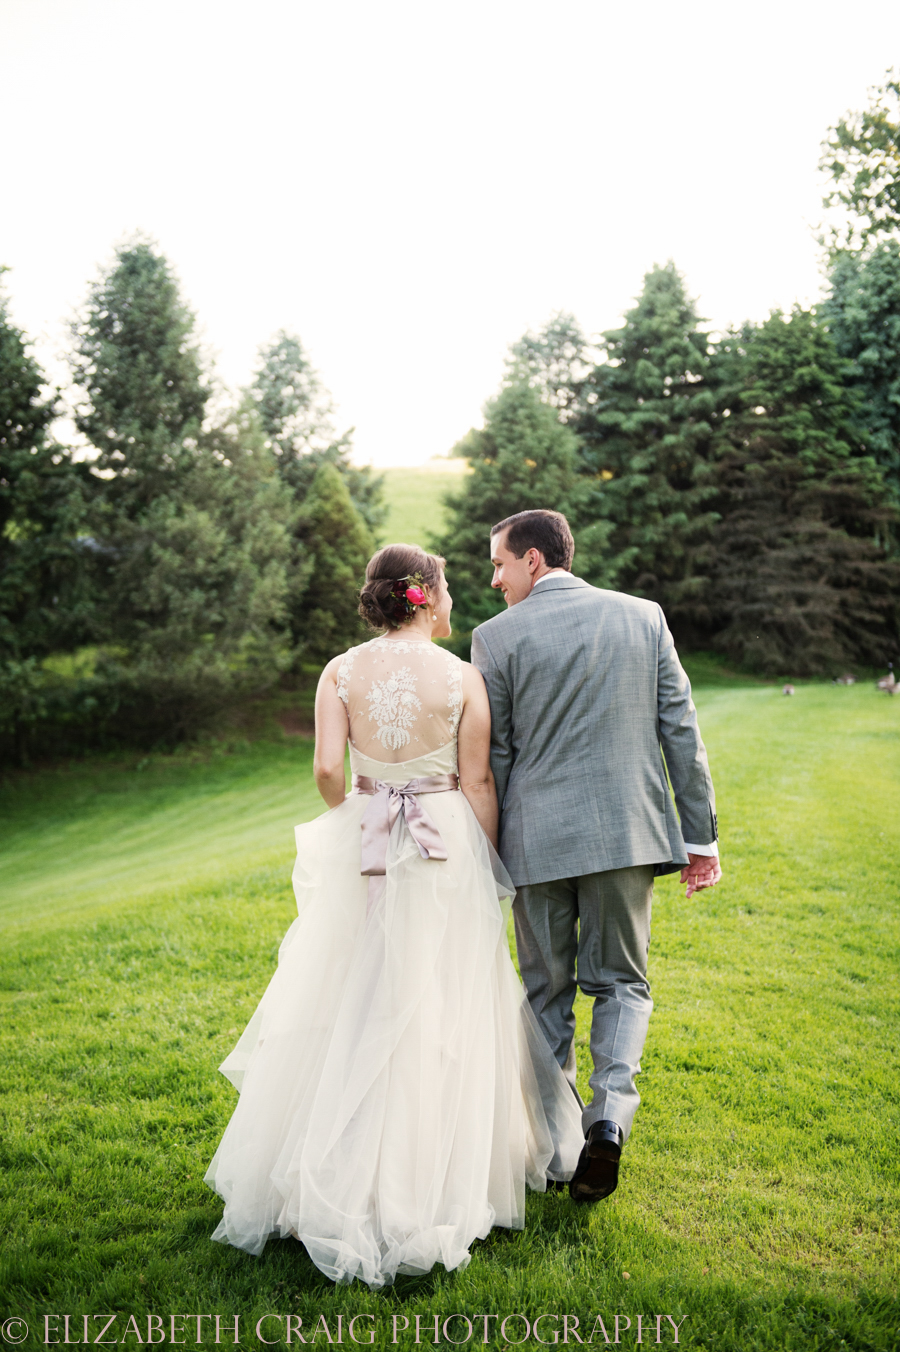 Shady Elms Farm Weddings and Receptions Elizabeth Craig Photography-0147